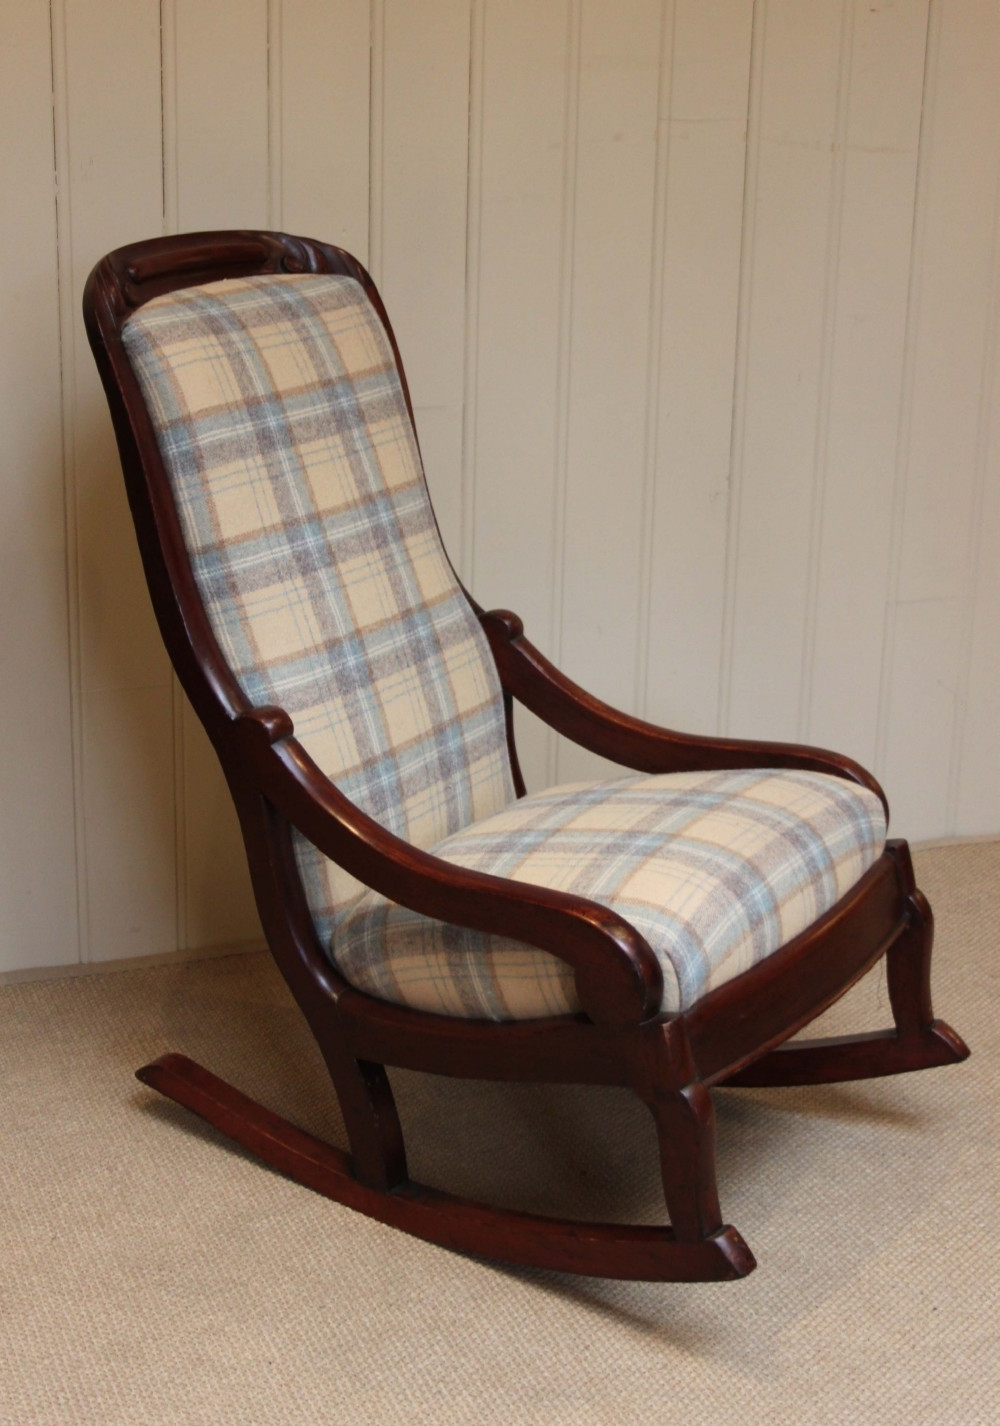 Sellingantiques Pertaining To Victorian Rocking Chairs (View 6 of 15)